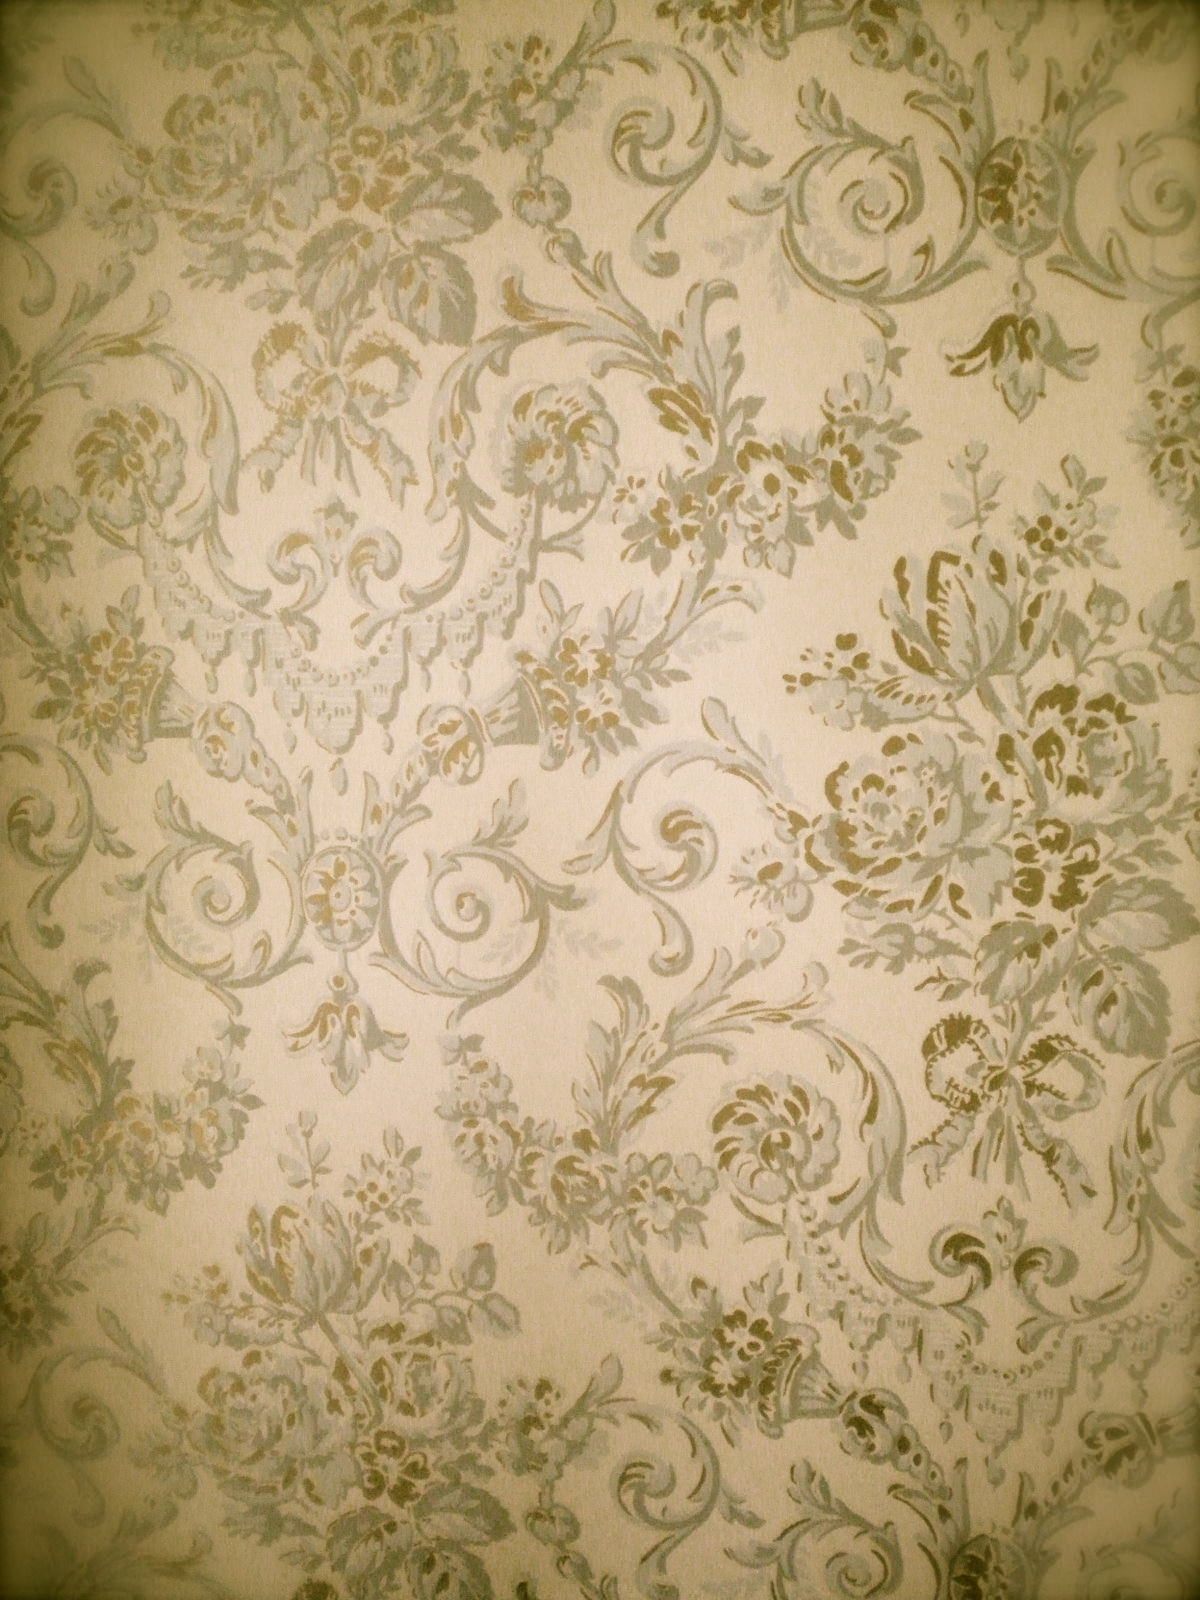 Vintage Victorian Flower Background